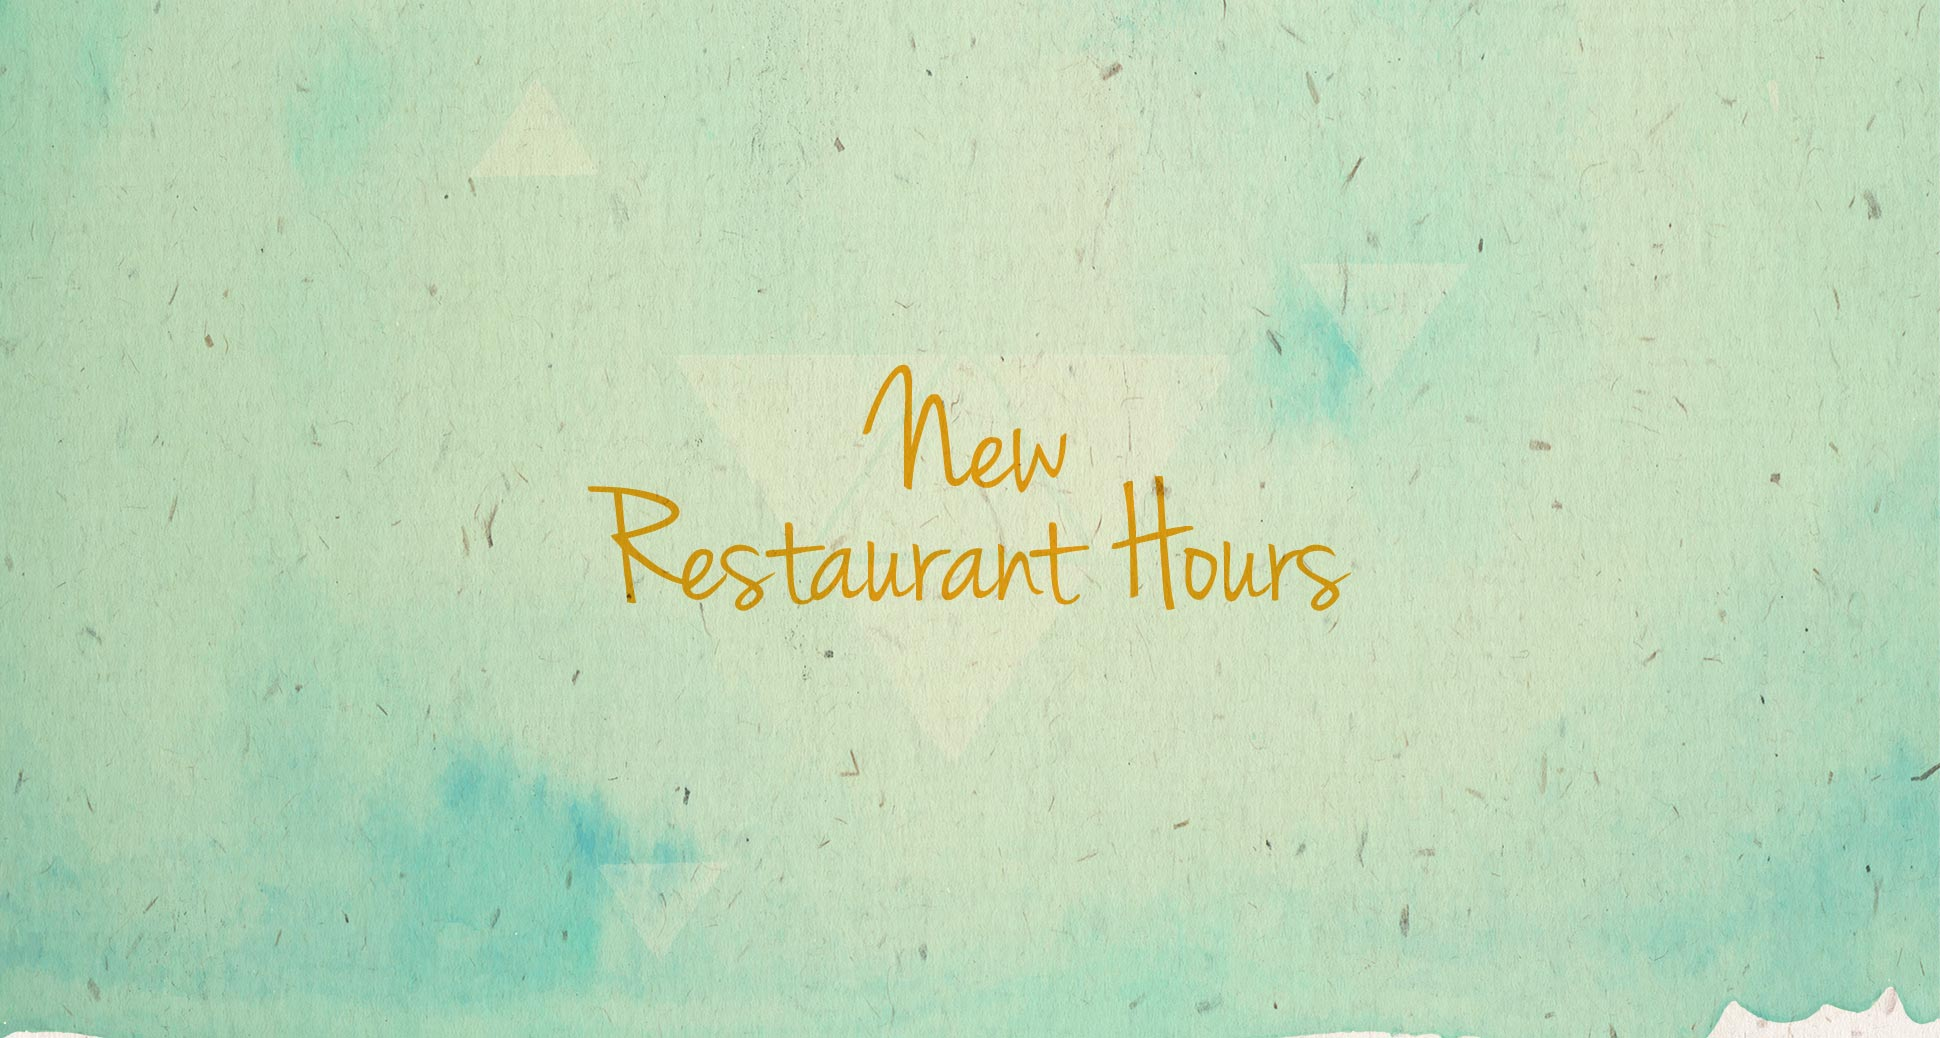 New restaurant hours!